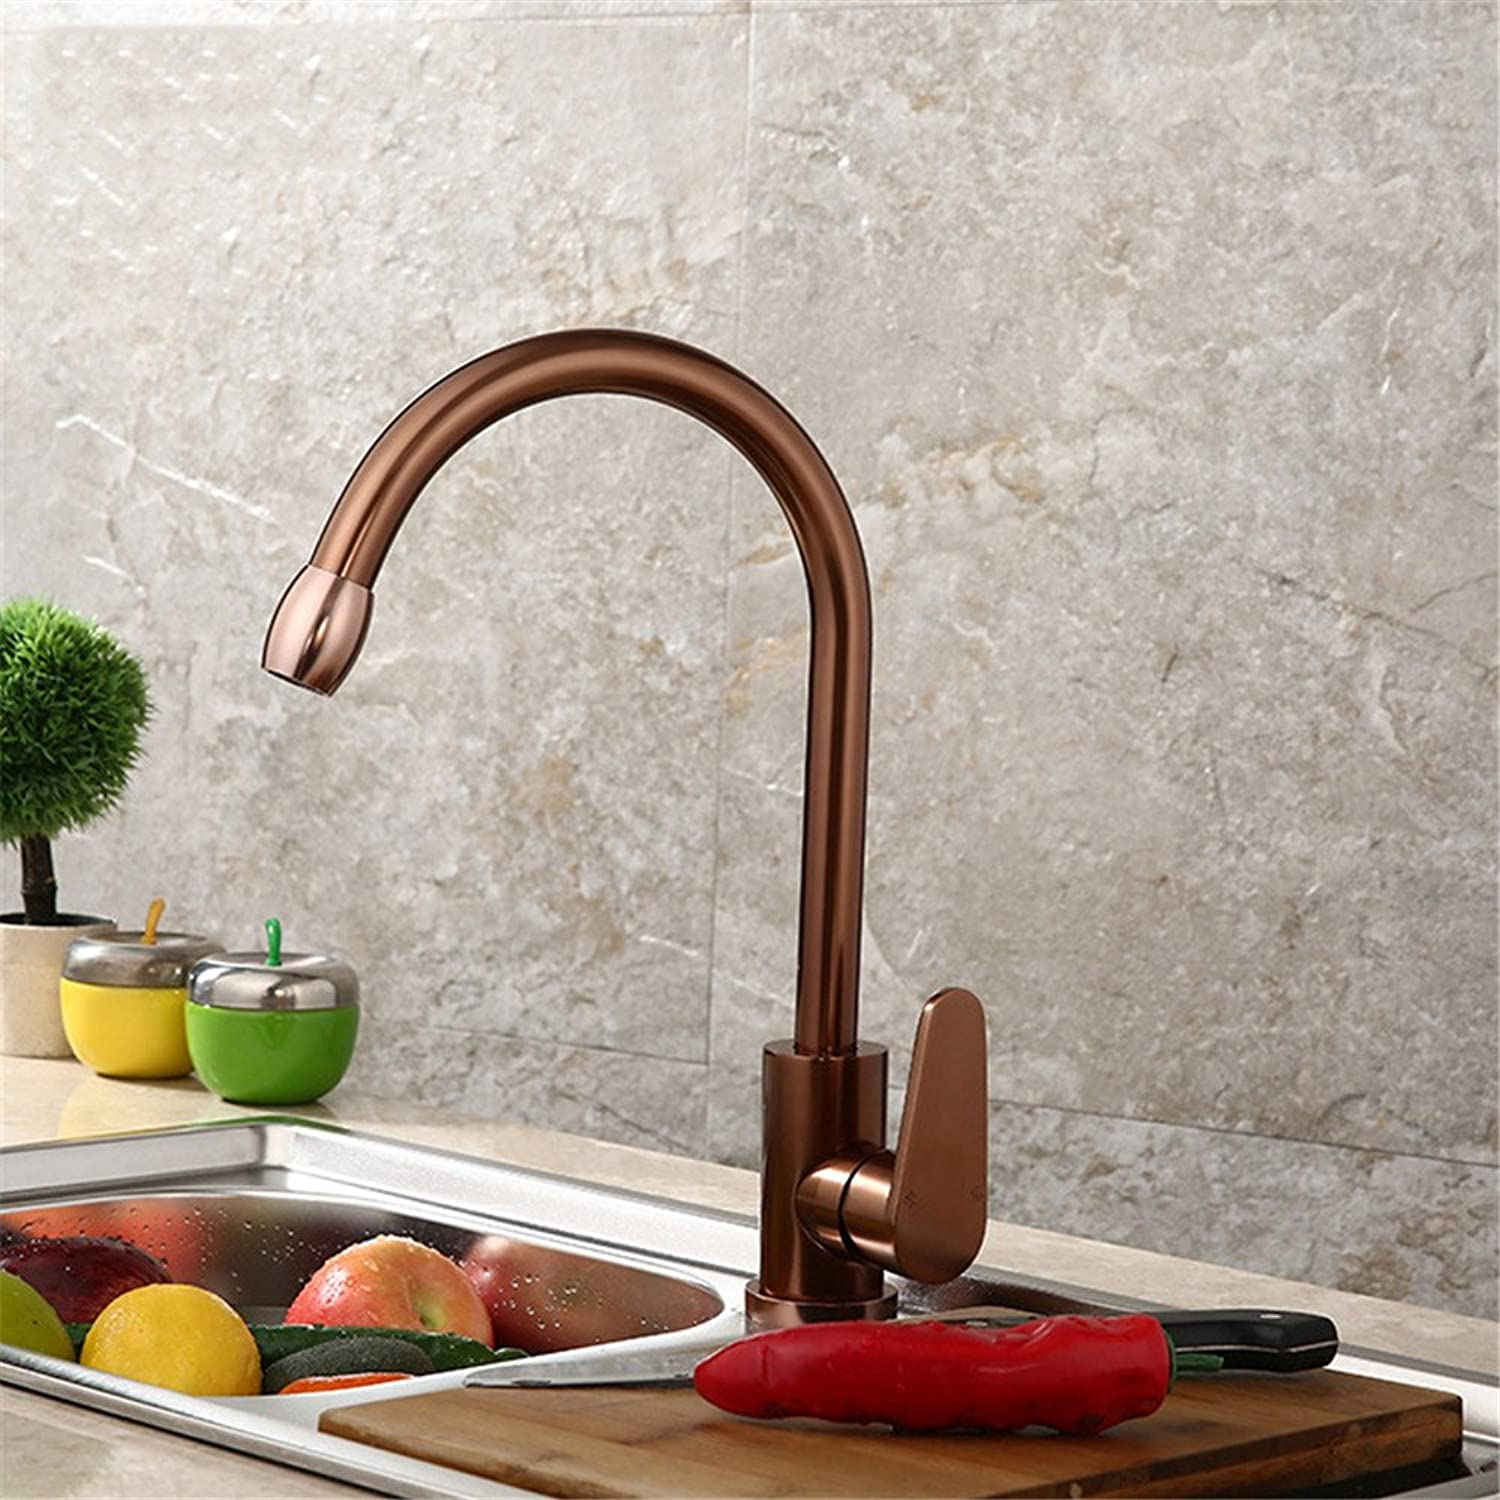 TYAW-SHOP The space aluminum faucet basin, hot and cold water kitchen table basin mixer